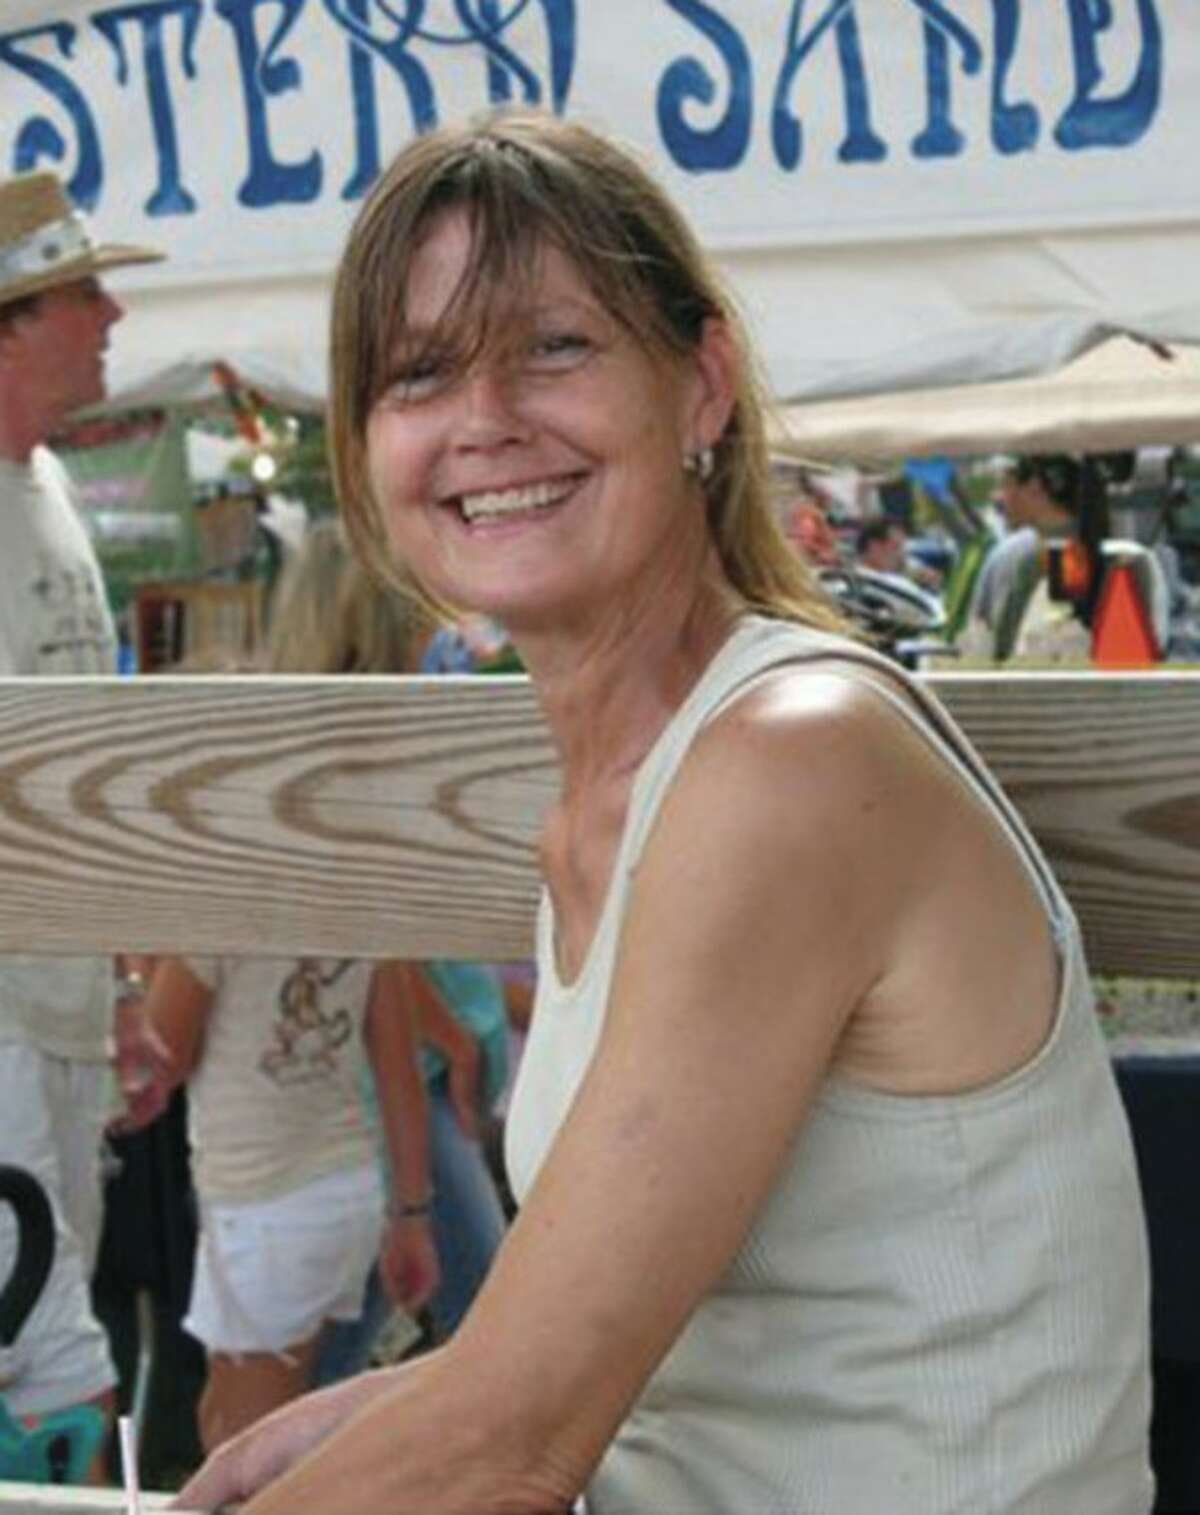 """FILE - This undated file photo provided by the Nash family via Brigham and Women's Hospital in Boston, shows Charla Nash of Stamford, Conn., prior to being mauled by a Chimpanzee in 2009. Nash underwent a face transplant in May 2011. Nash tells NBC's """"Today"""" show, Monday, Nov. 21, 2011, she's returning to more of her normal life and her donor face has begun molding to her underlying bone structure. (AP Photo/Family Photo, File)"""